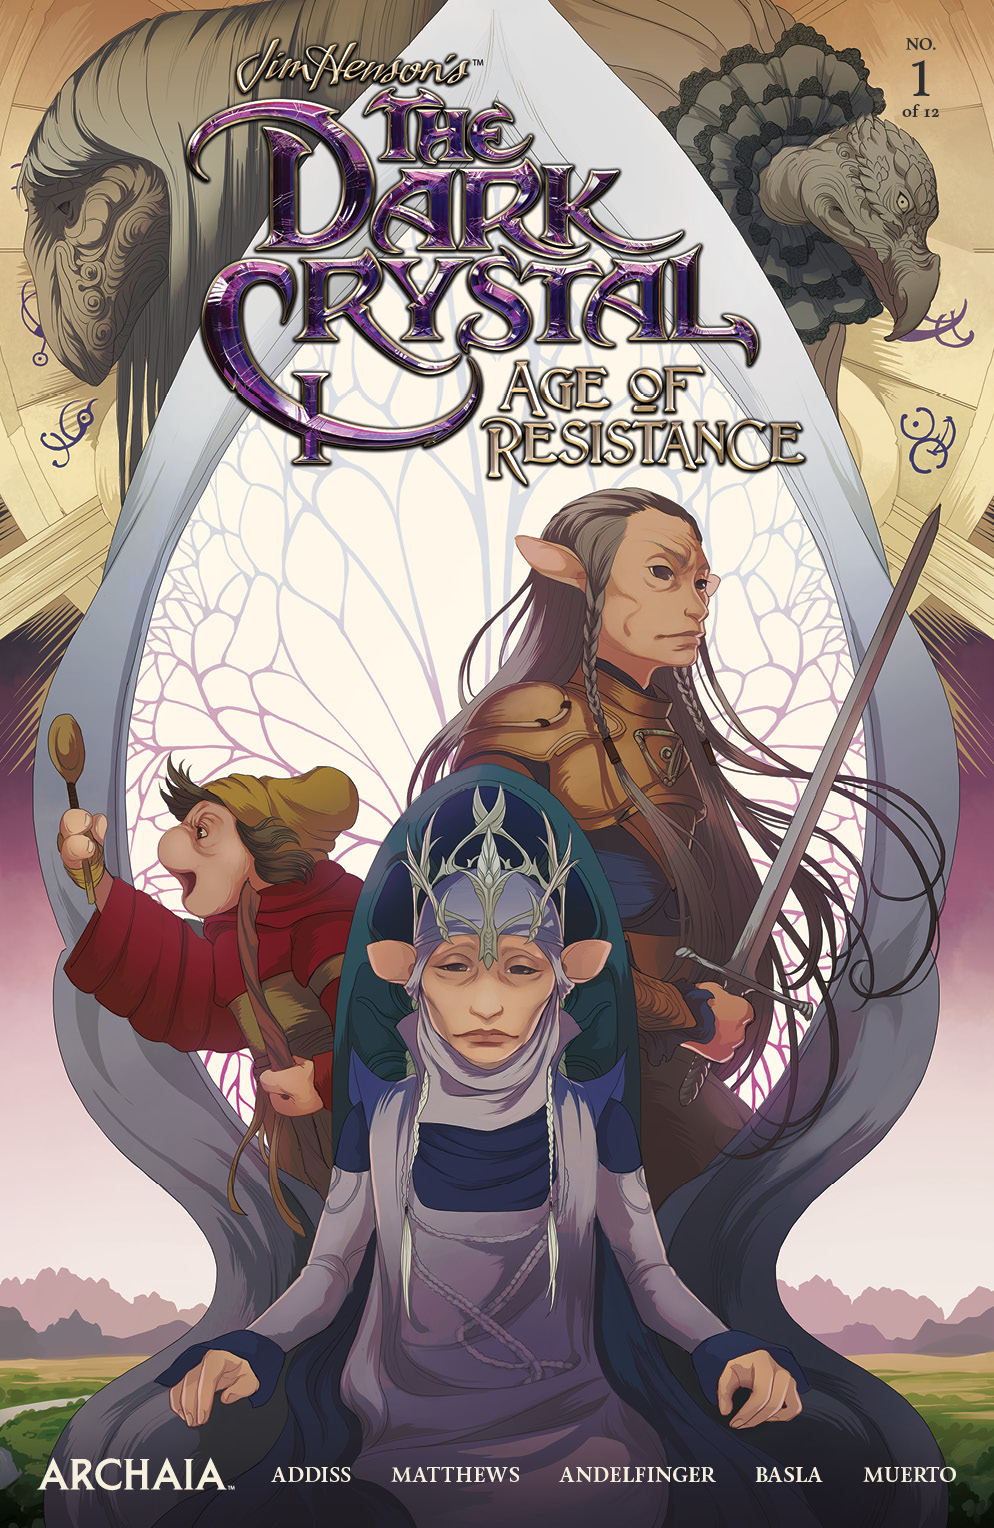 BOOM! Preview: Jim Henson's The Dark Crystal: Age of Resistance #1